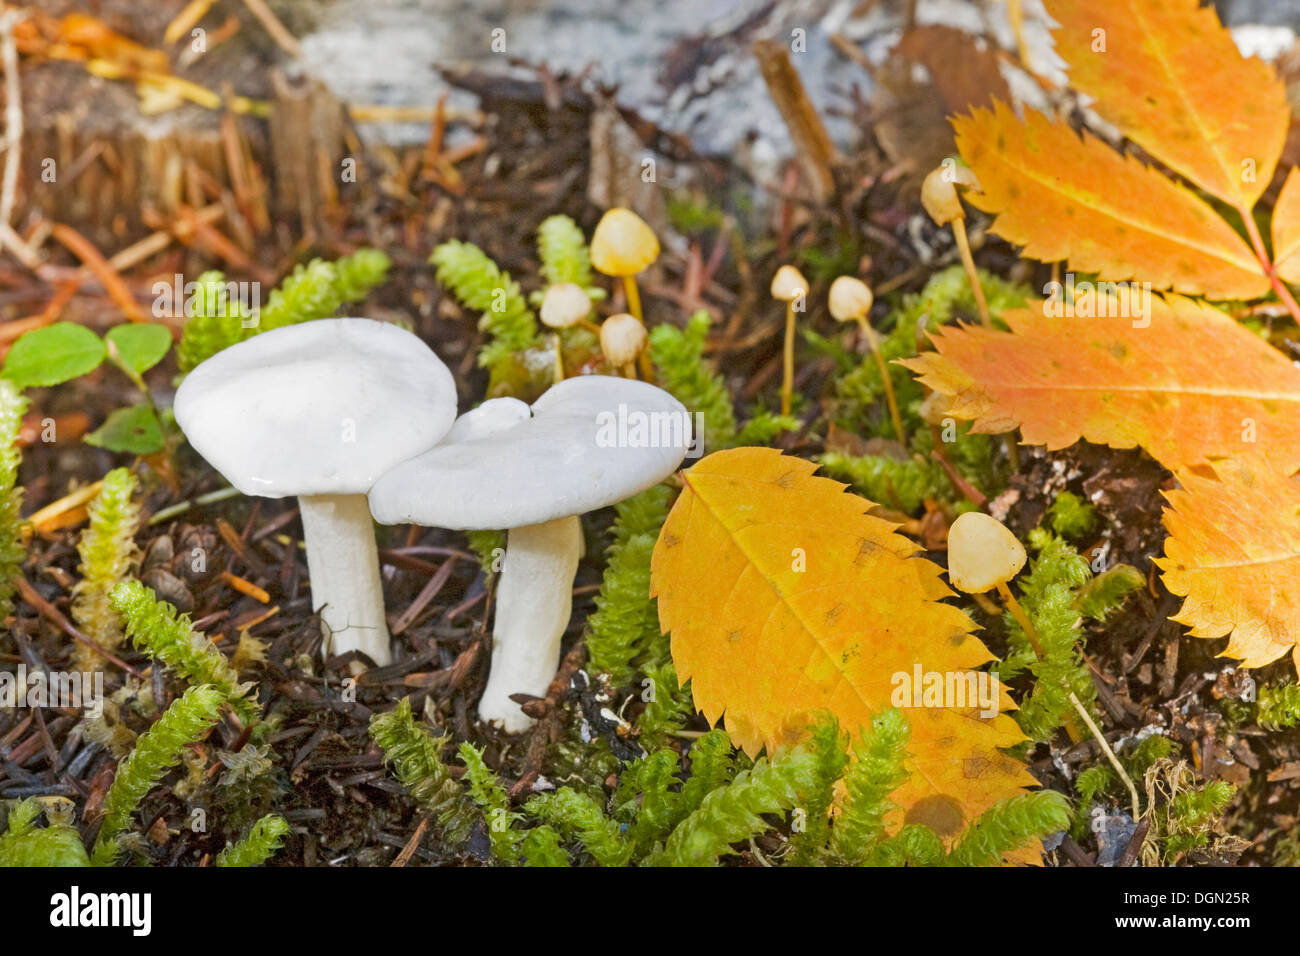 hygrophorus piceae, a snow white mushroom from the Pacific Northwest - Stock Image